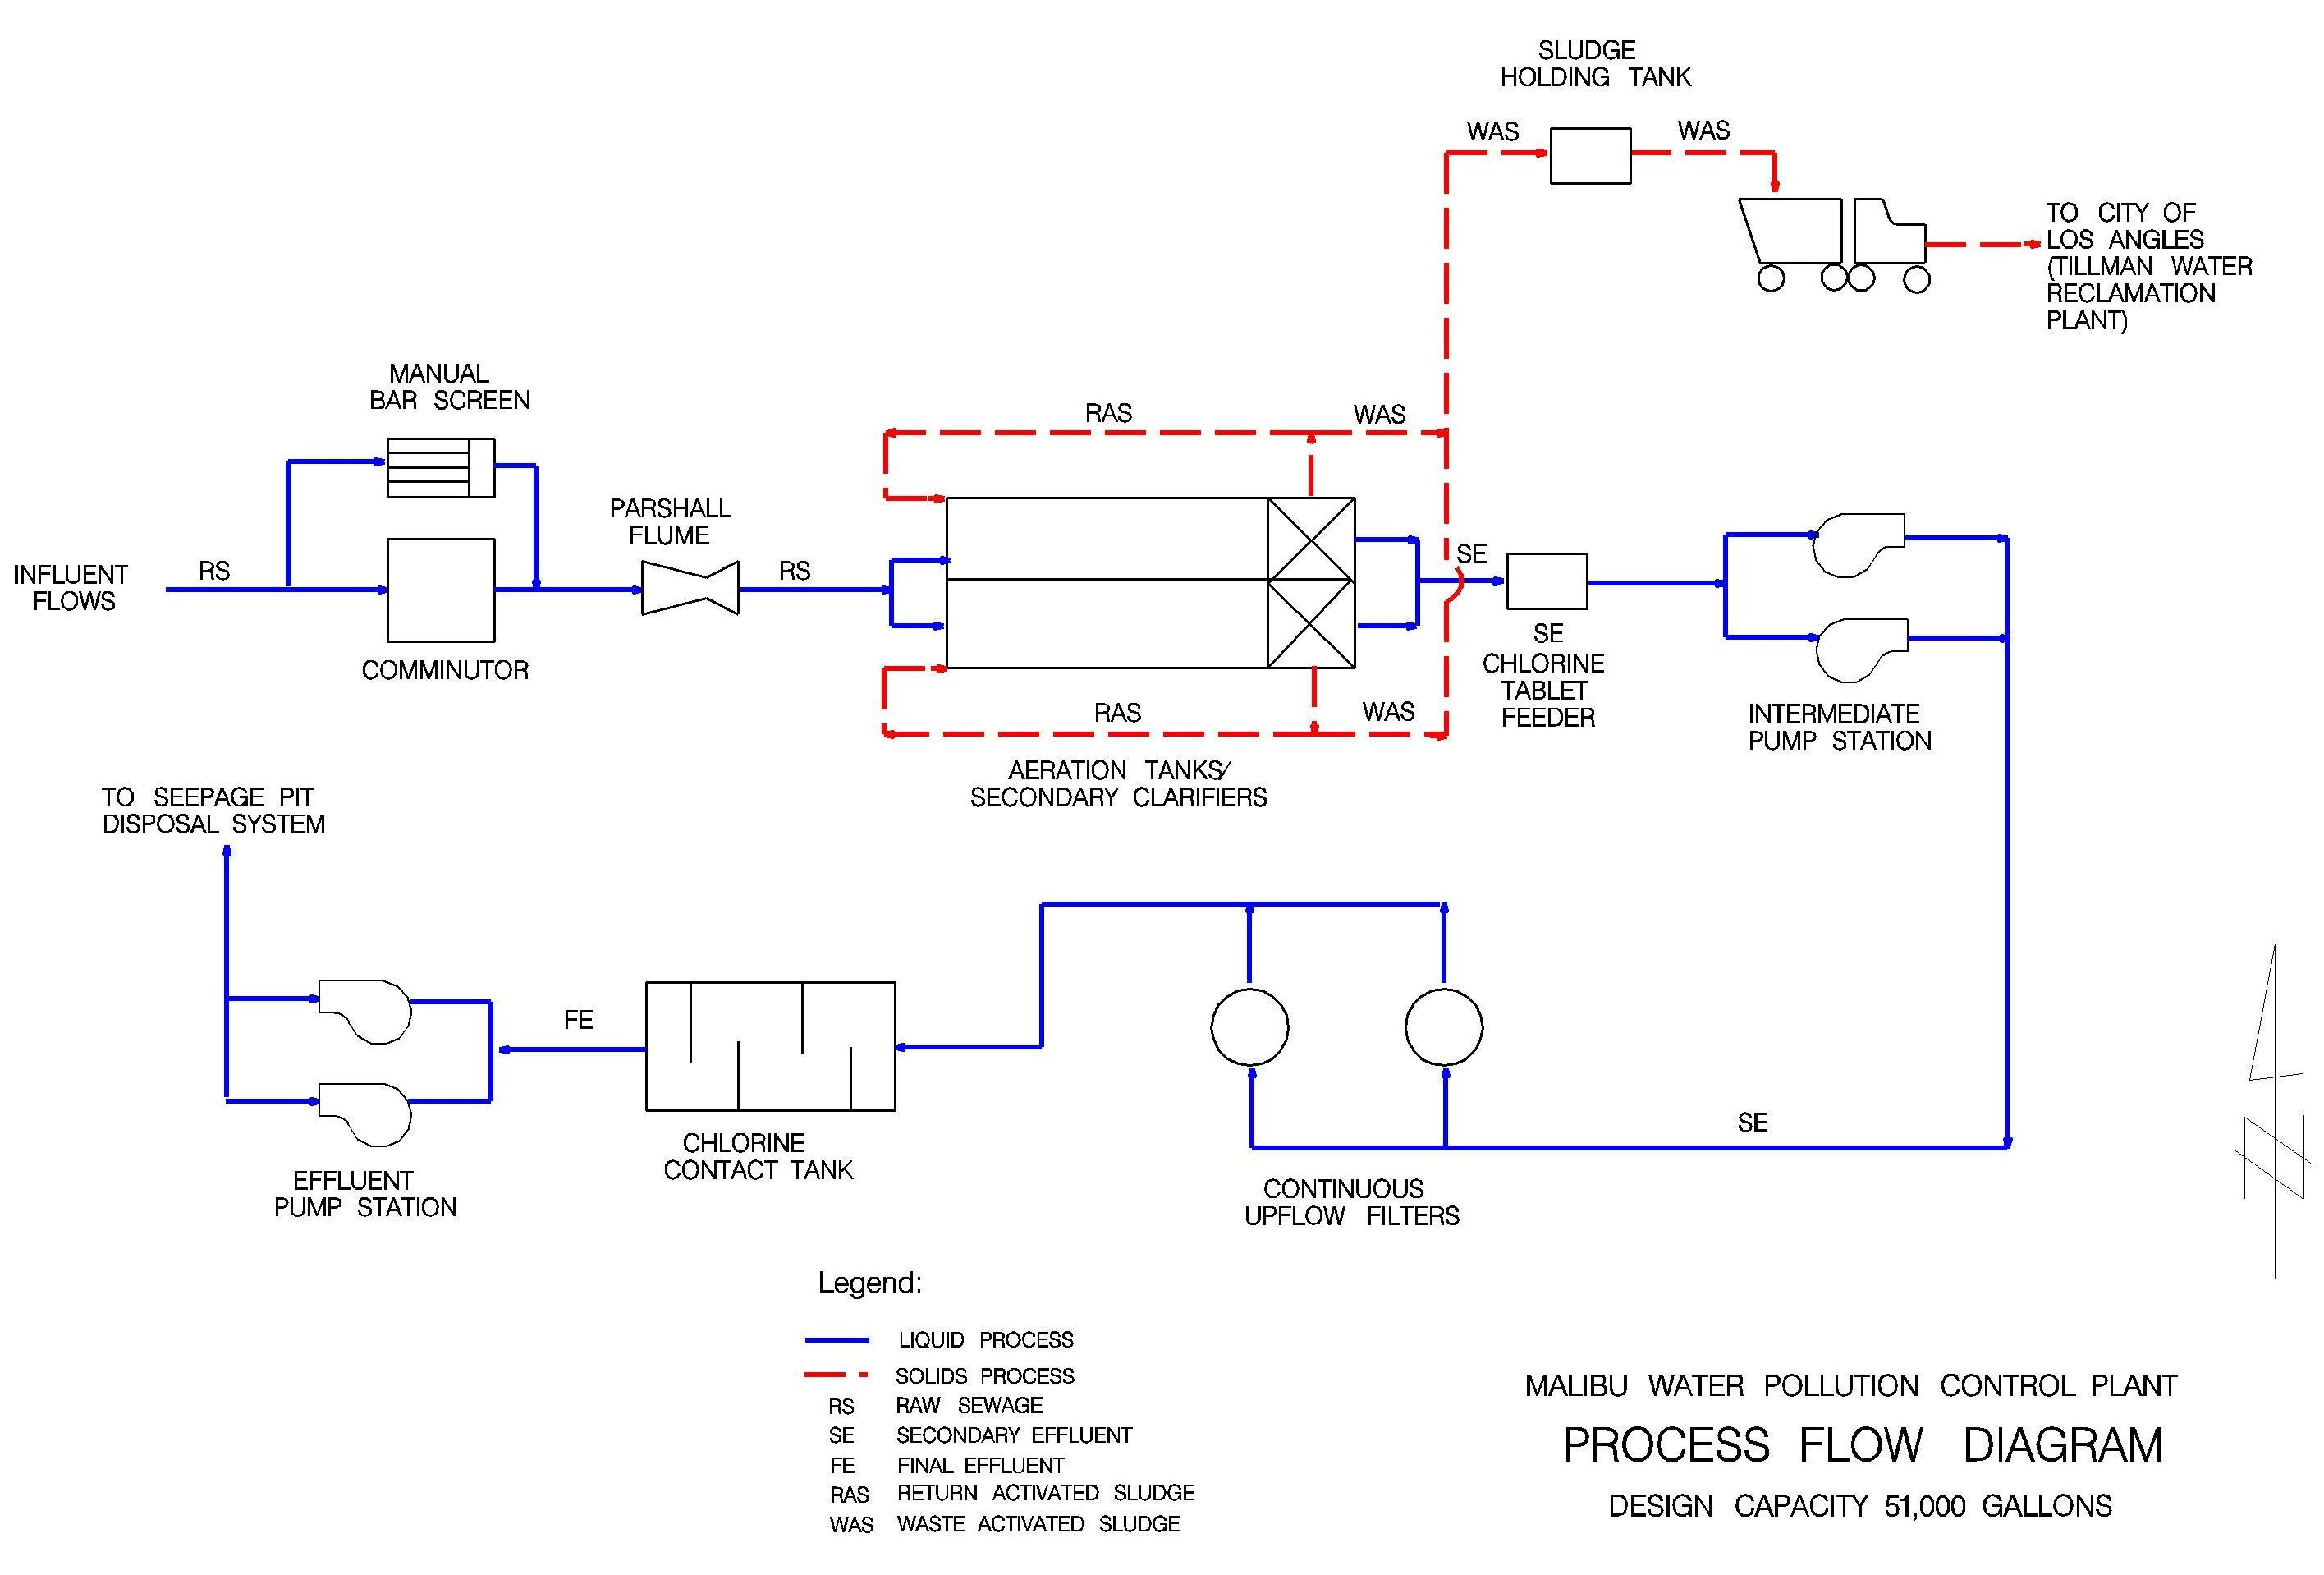 Figure 3 1 Flow Diagram